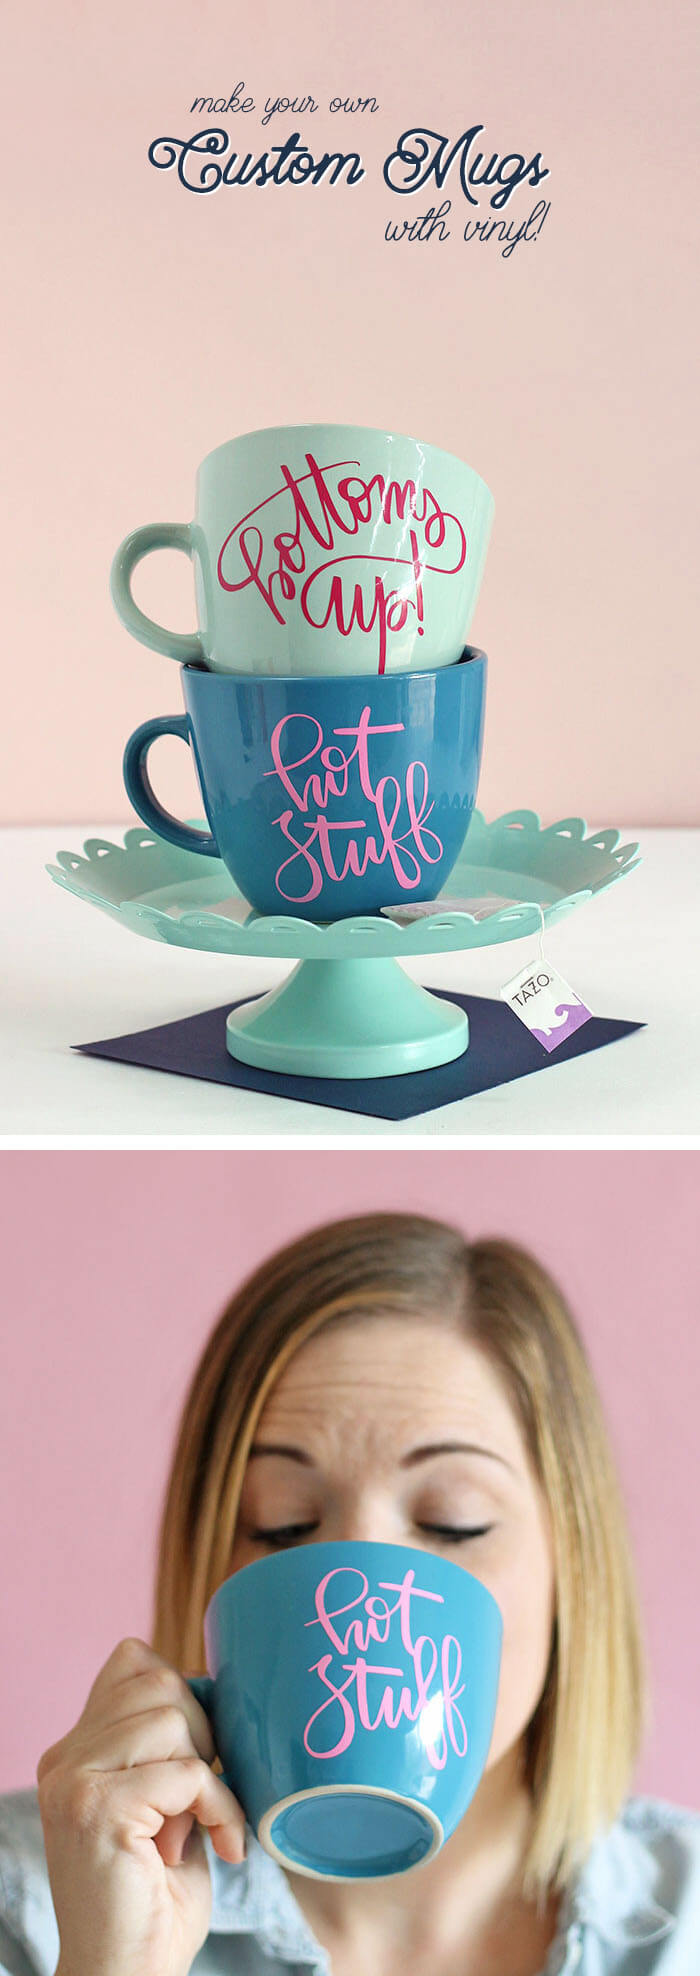 How To DIY Personalized Mugs And Tea Cups Persia Lou - Vinyl cup care instructions